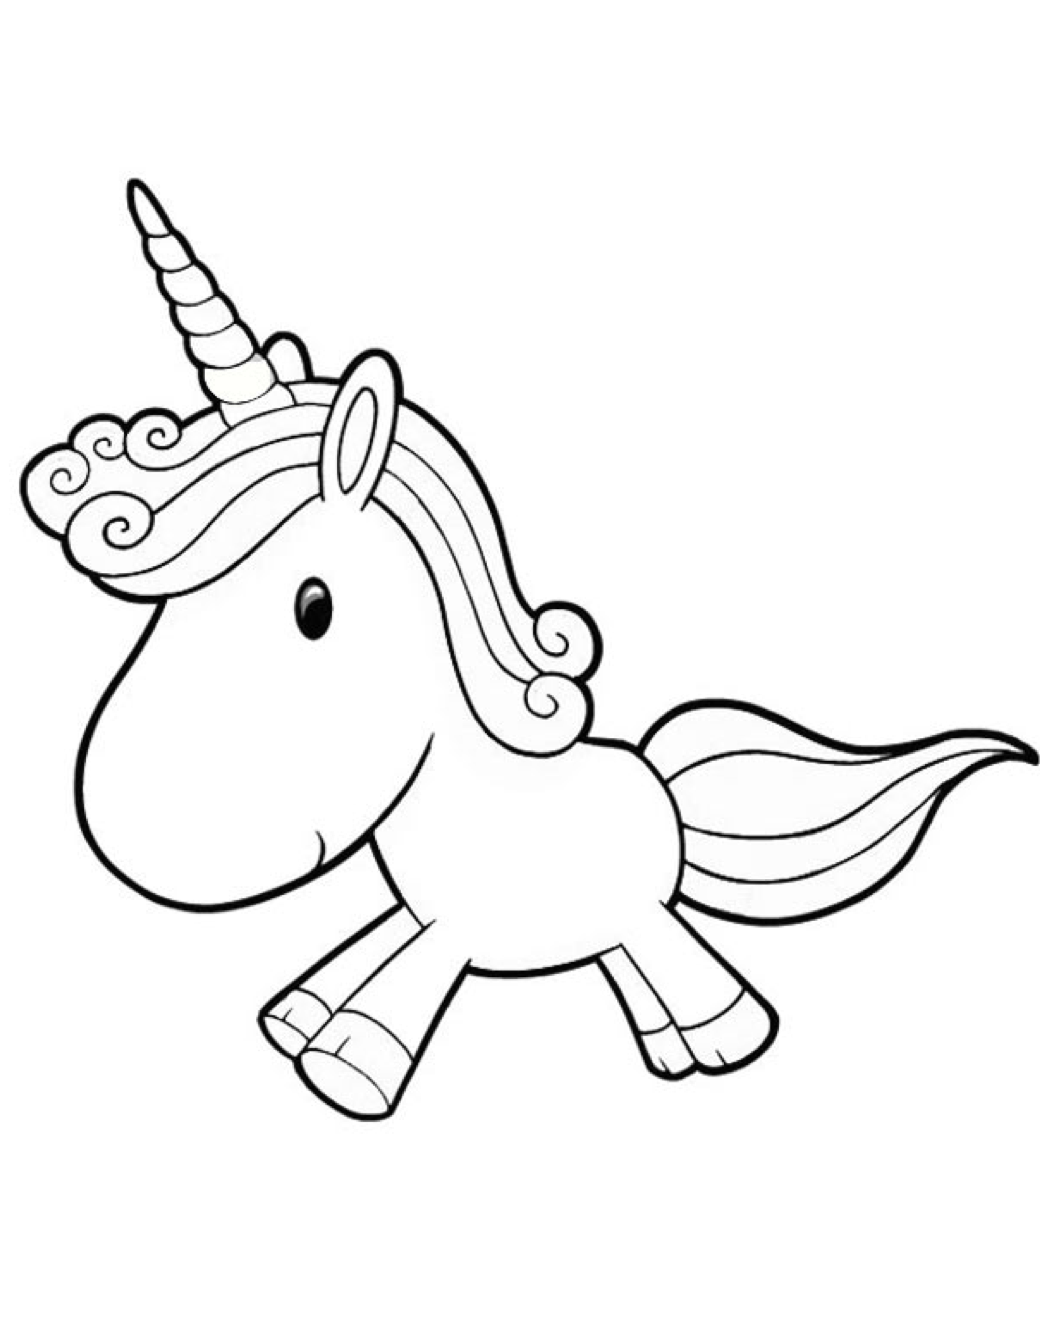 Cartoon Unicorn Coloring Page Coloring Book Coloring Page Unicorn